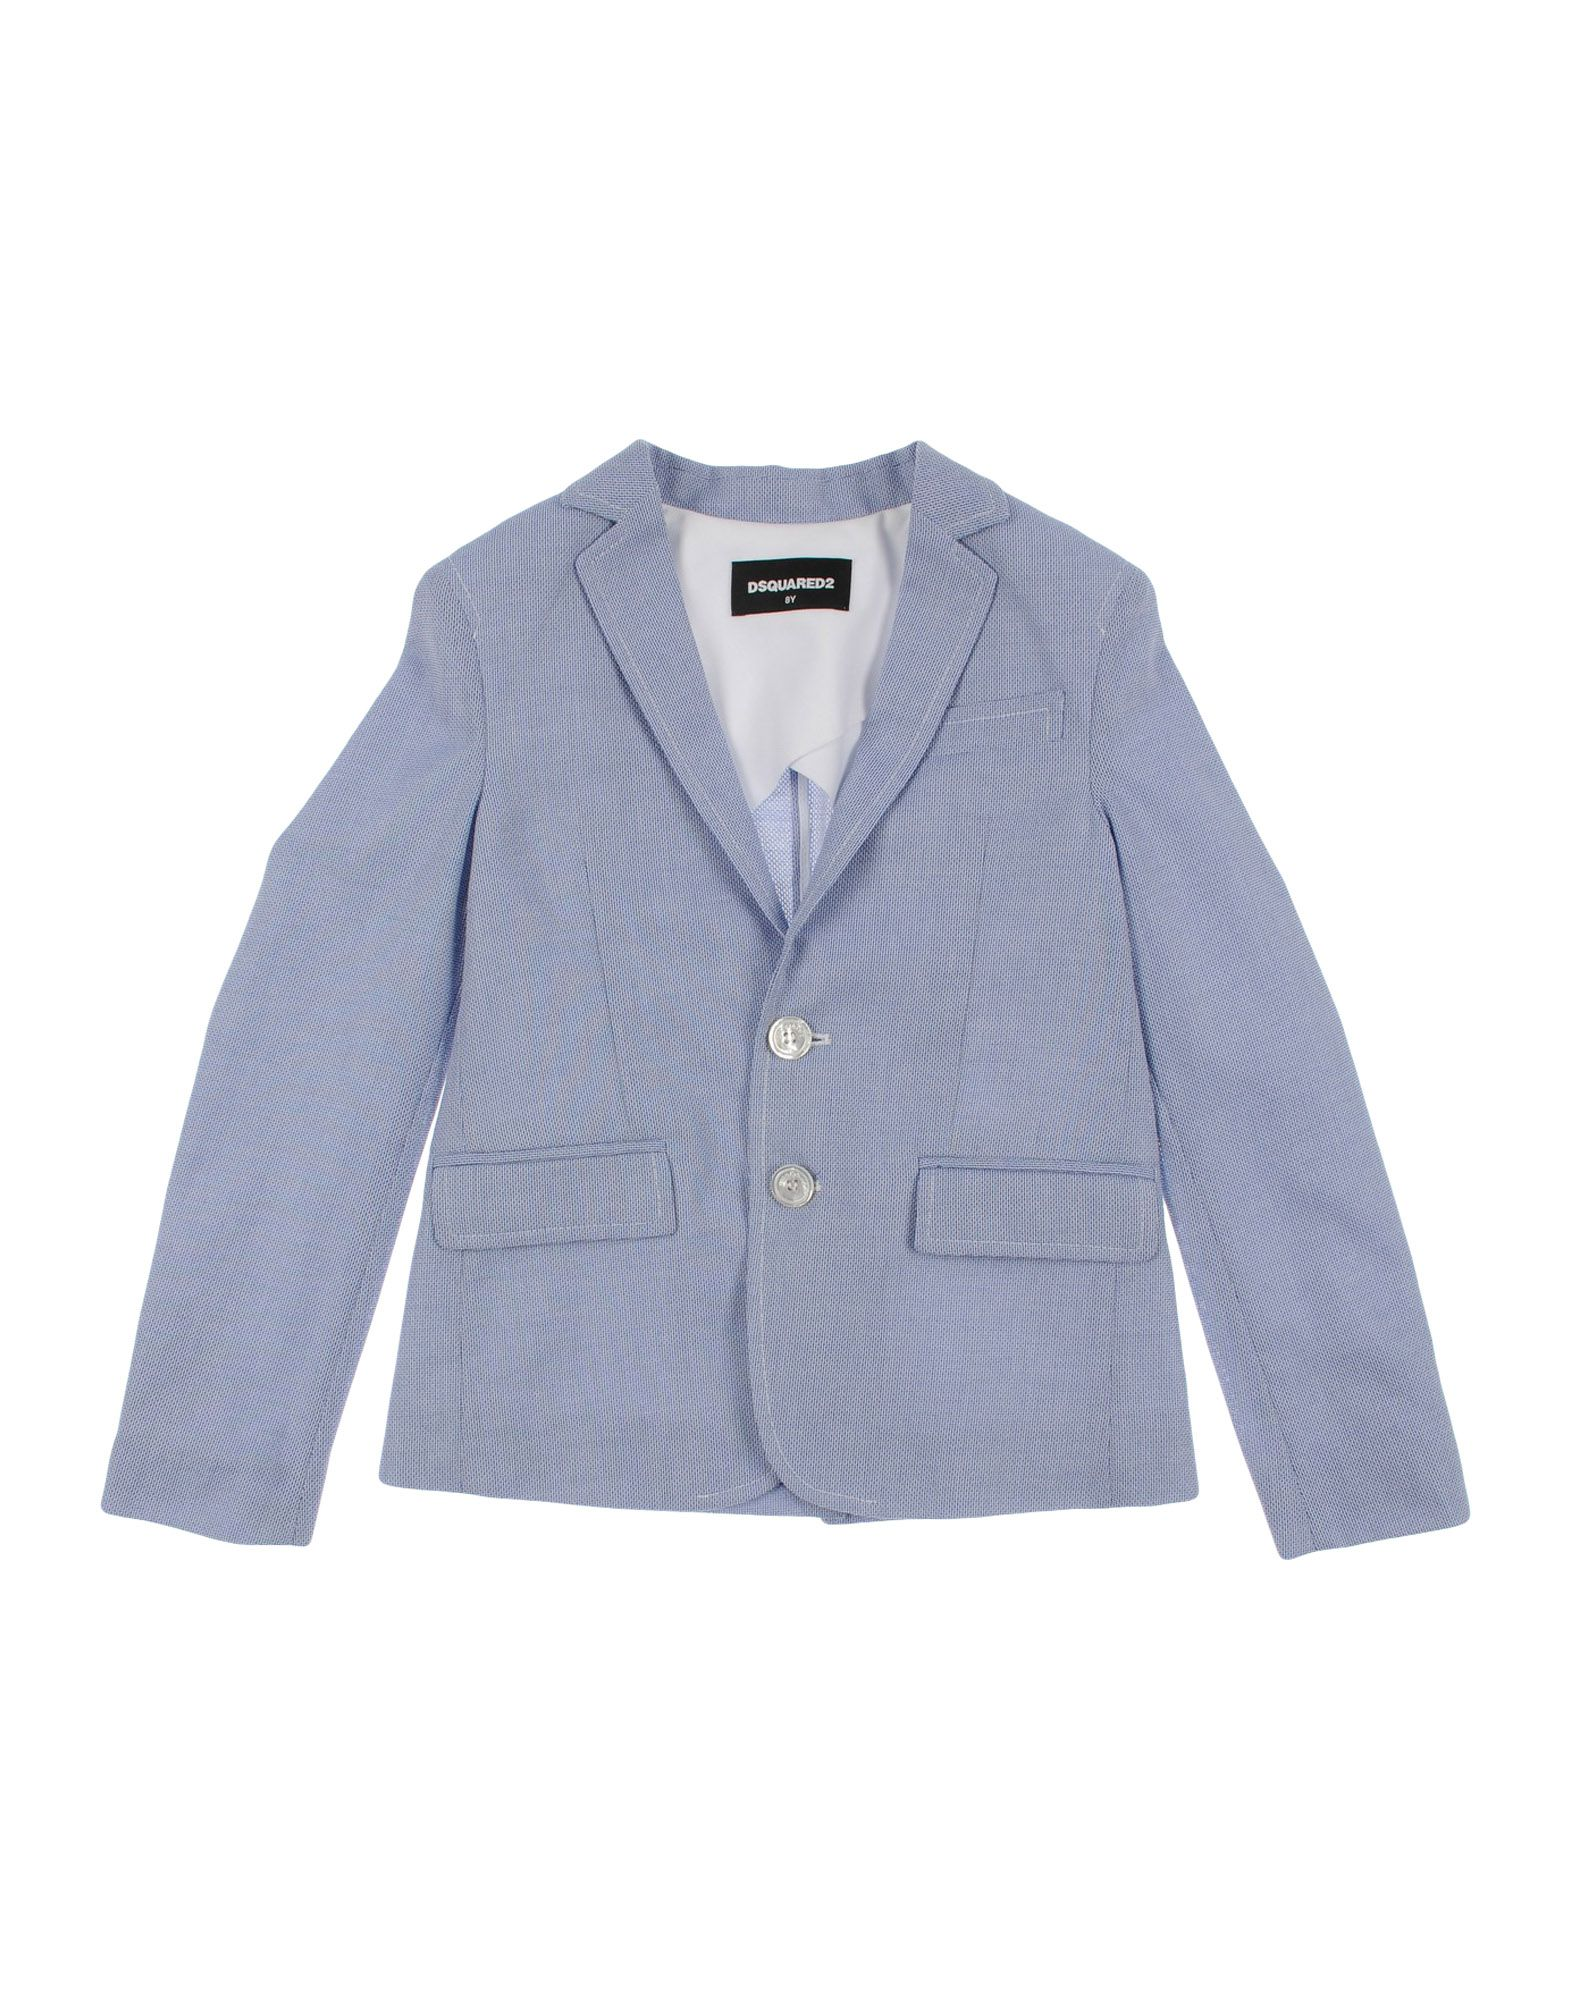 DSQUARED2 Jackett Kinder Azurblau von DSQUARED2